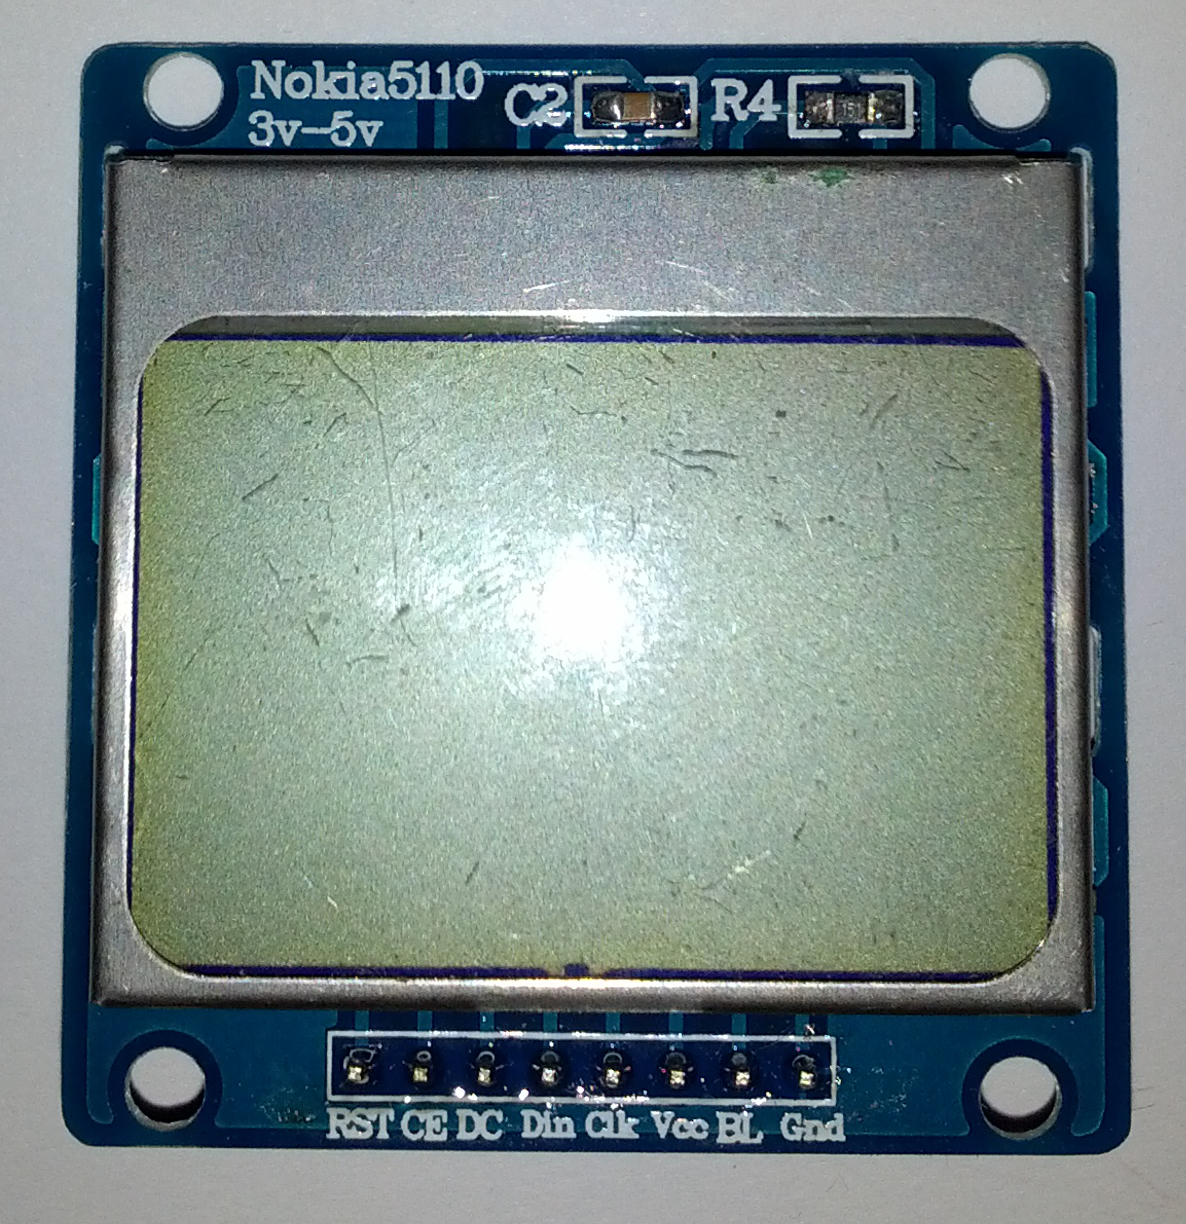 lcd display with raspberry pi rh blog onetwentyseven001 com Nokia 5210 Nokia 6600